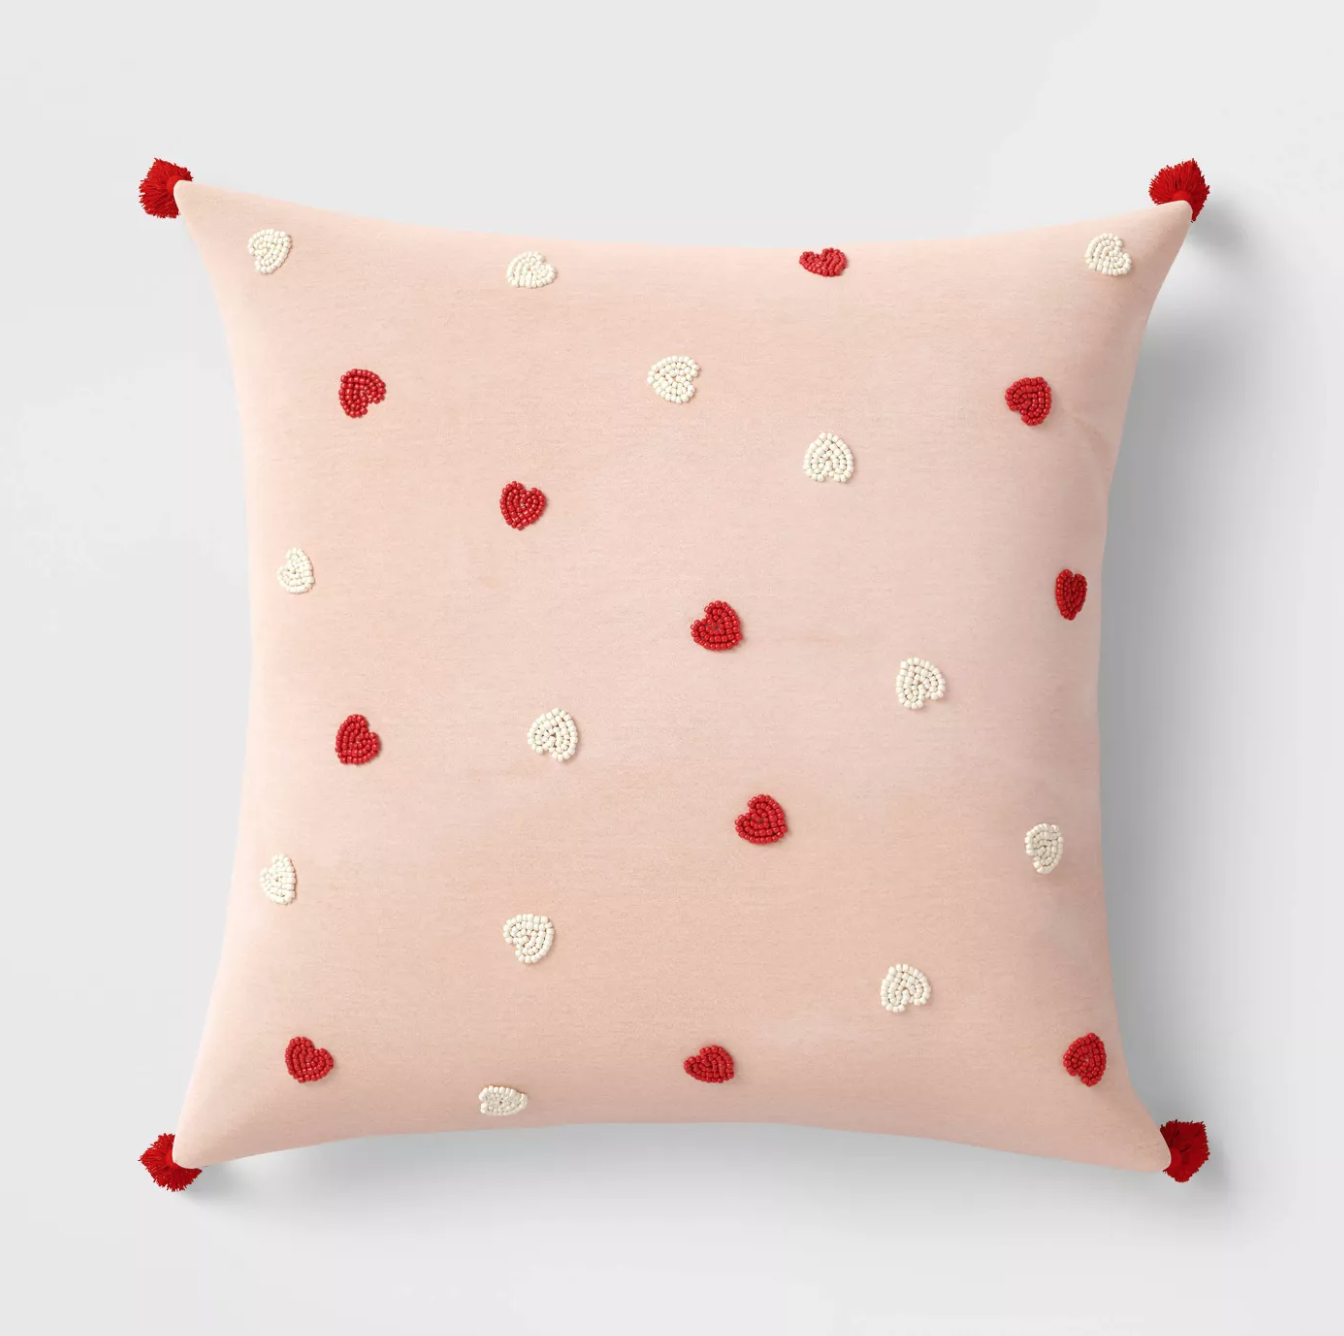 pink velvet pillow with white and red hearts and red tassels